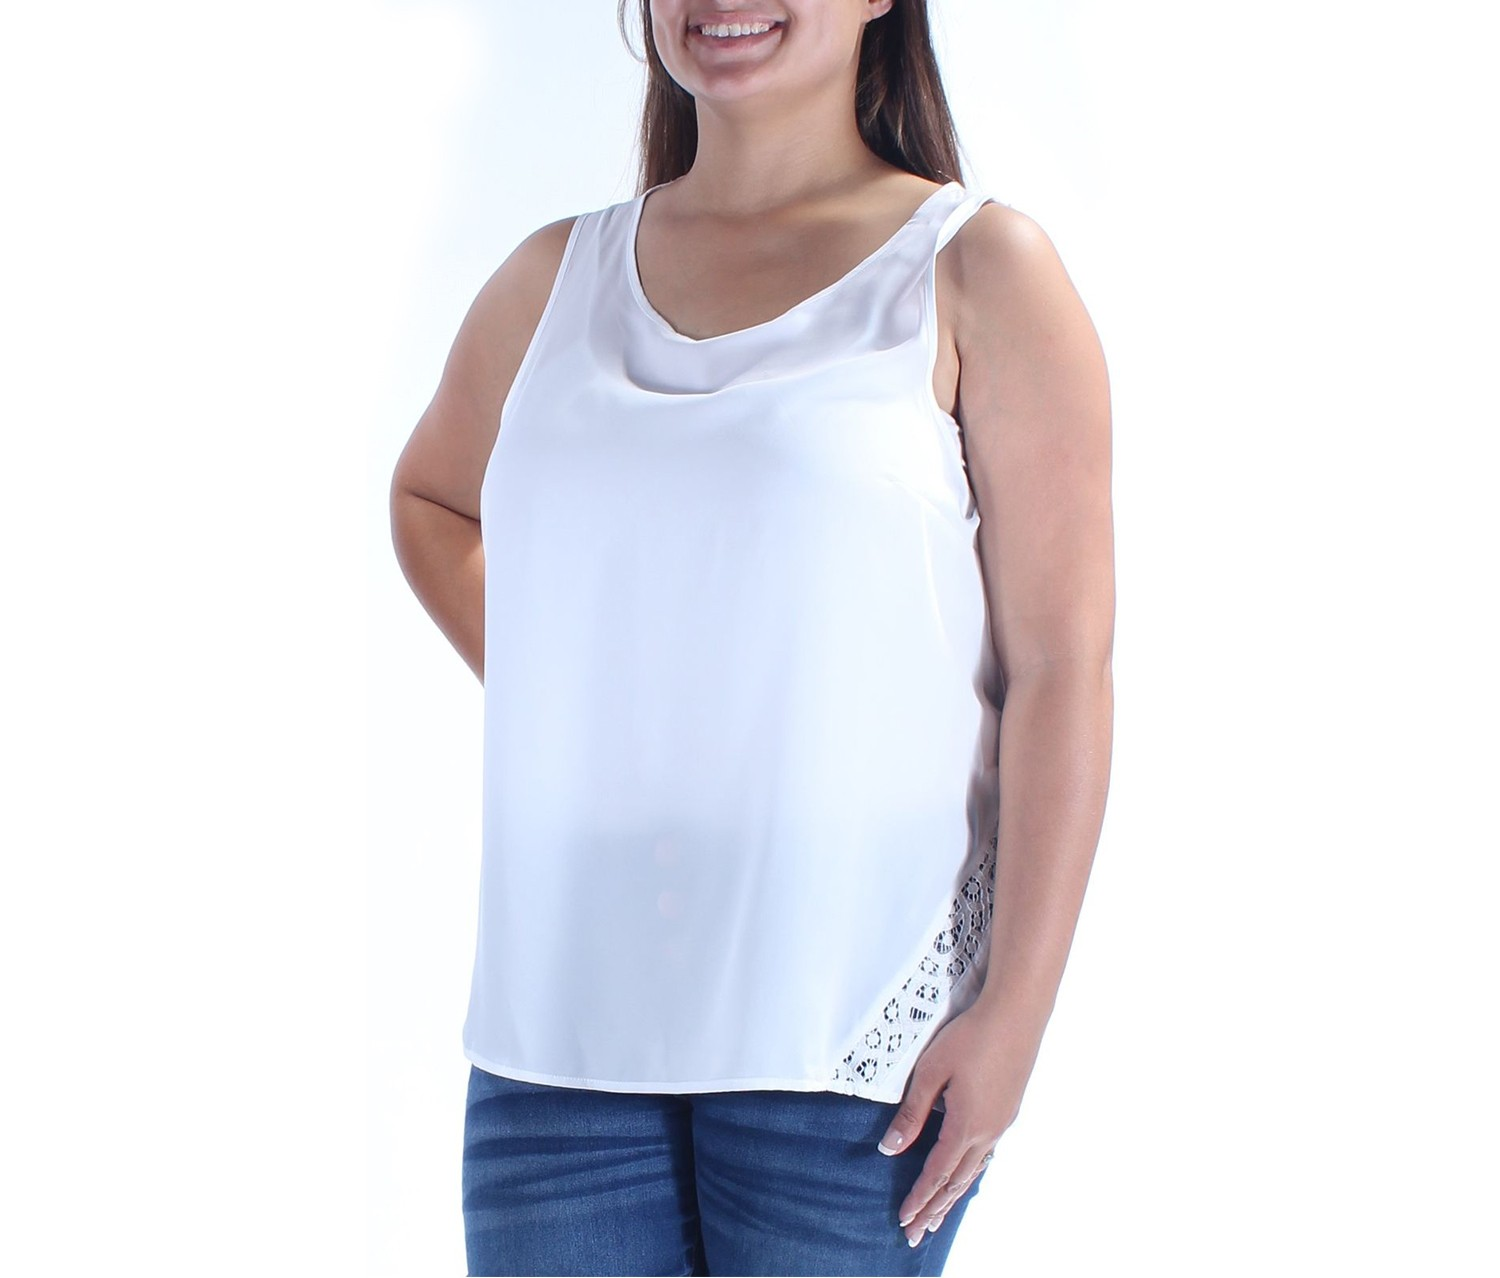 a0d3b51ad43e5 Shop Kensie Kensie Women's Scoop Neck Sleeveless Top, White for ...